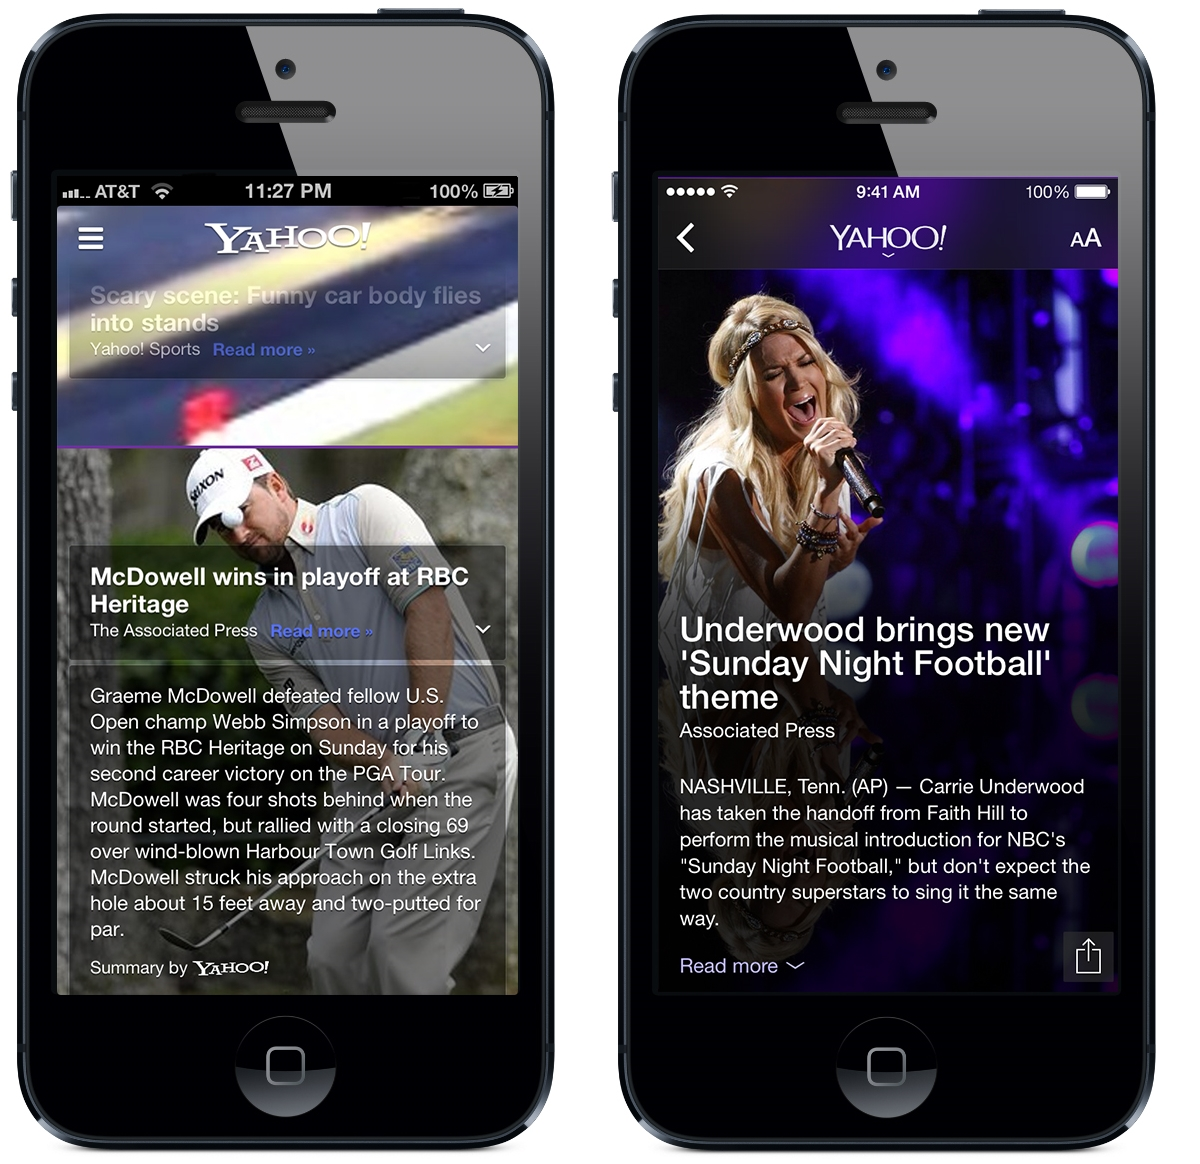 Yahoo iOS7 Before and after: The best iOS 7 app redesigns